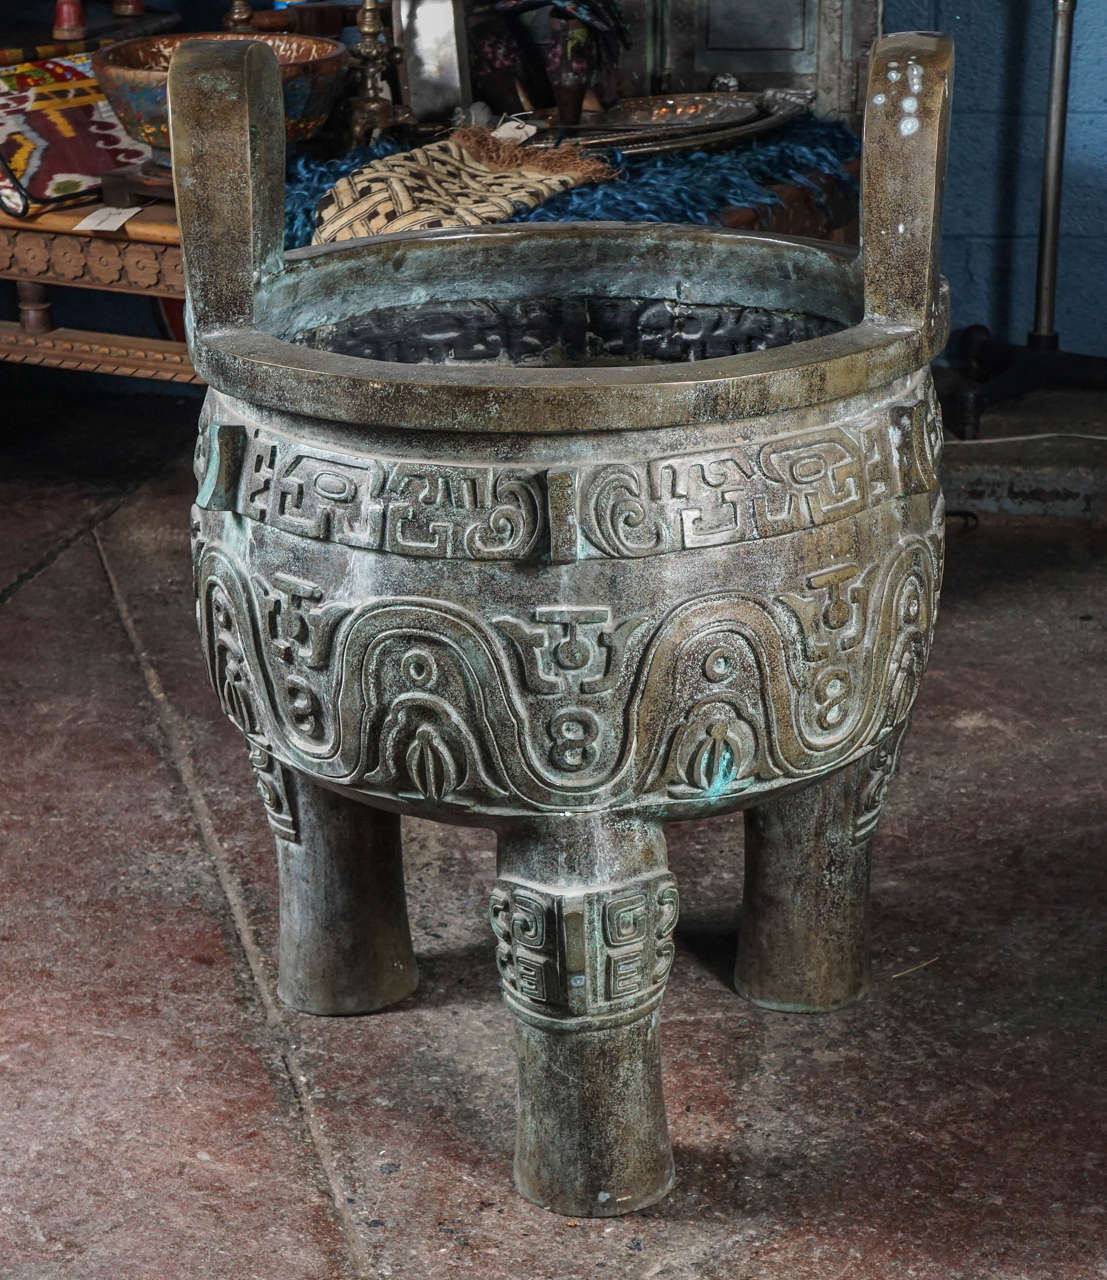 Sculptural Chinese vessel used for cooking, storage and preparation of ritual offerings to ancestors. Dating back from Xia dynasty to Zhou dynasty, they were associated with power and dominion over land.